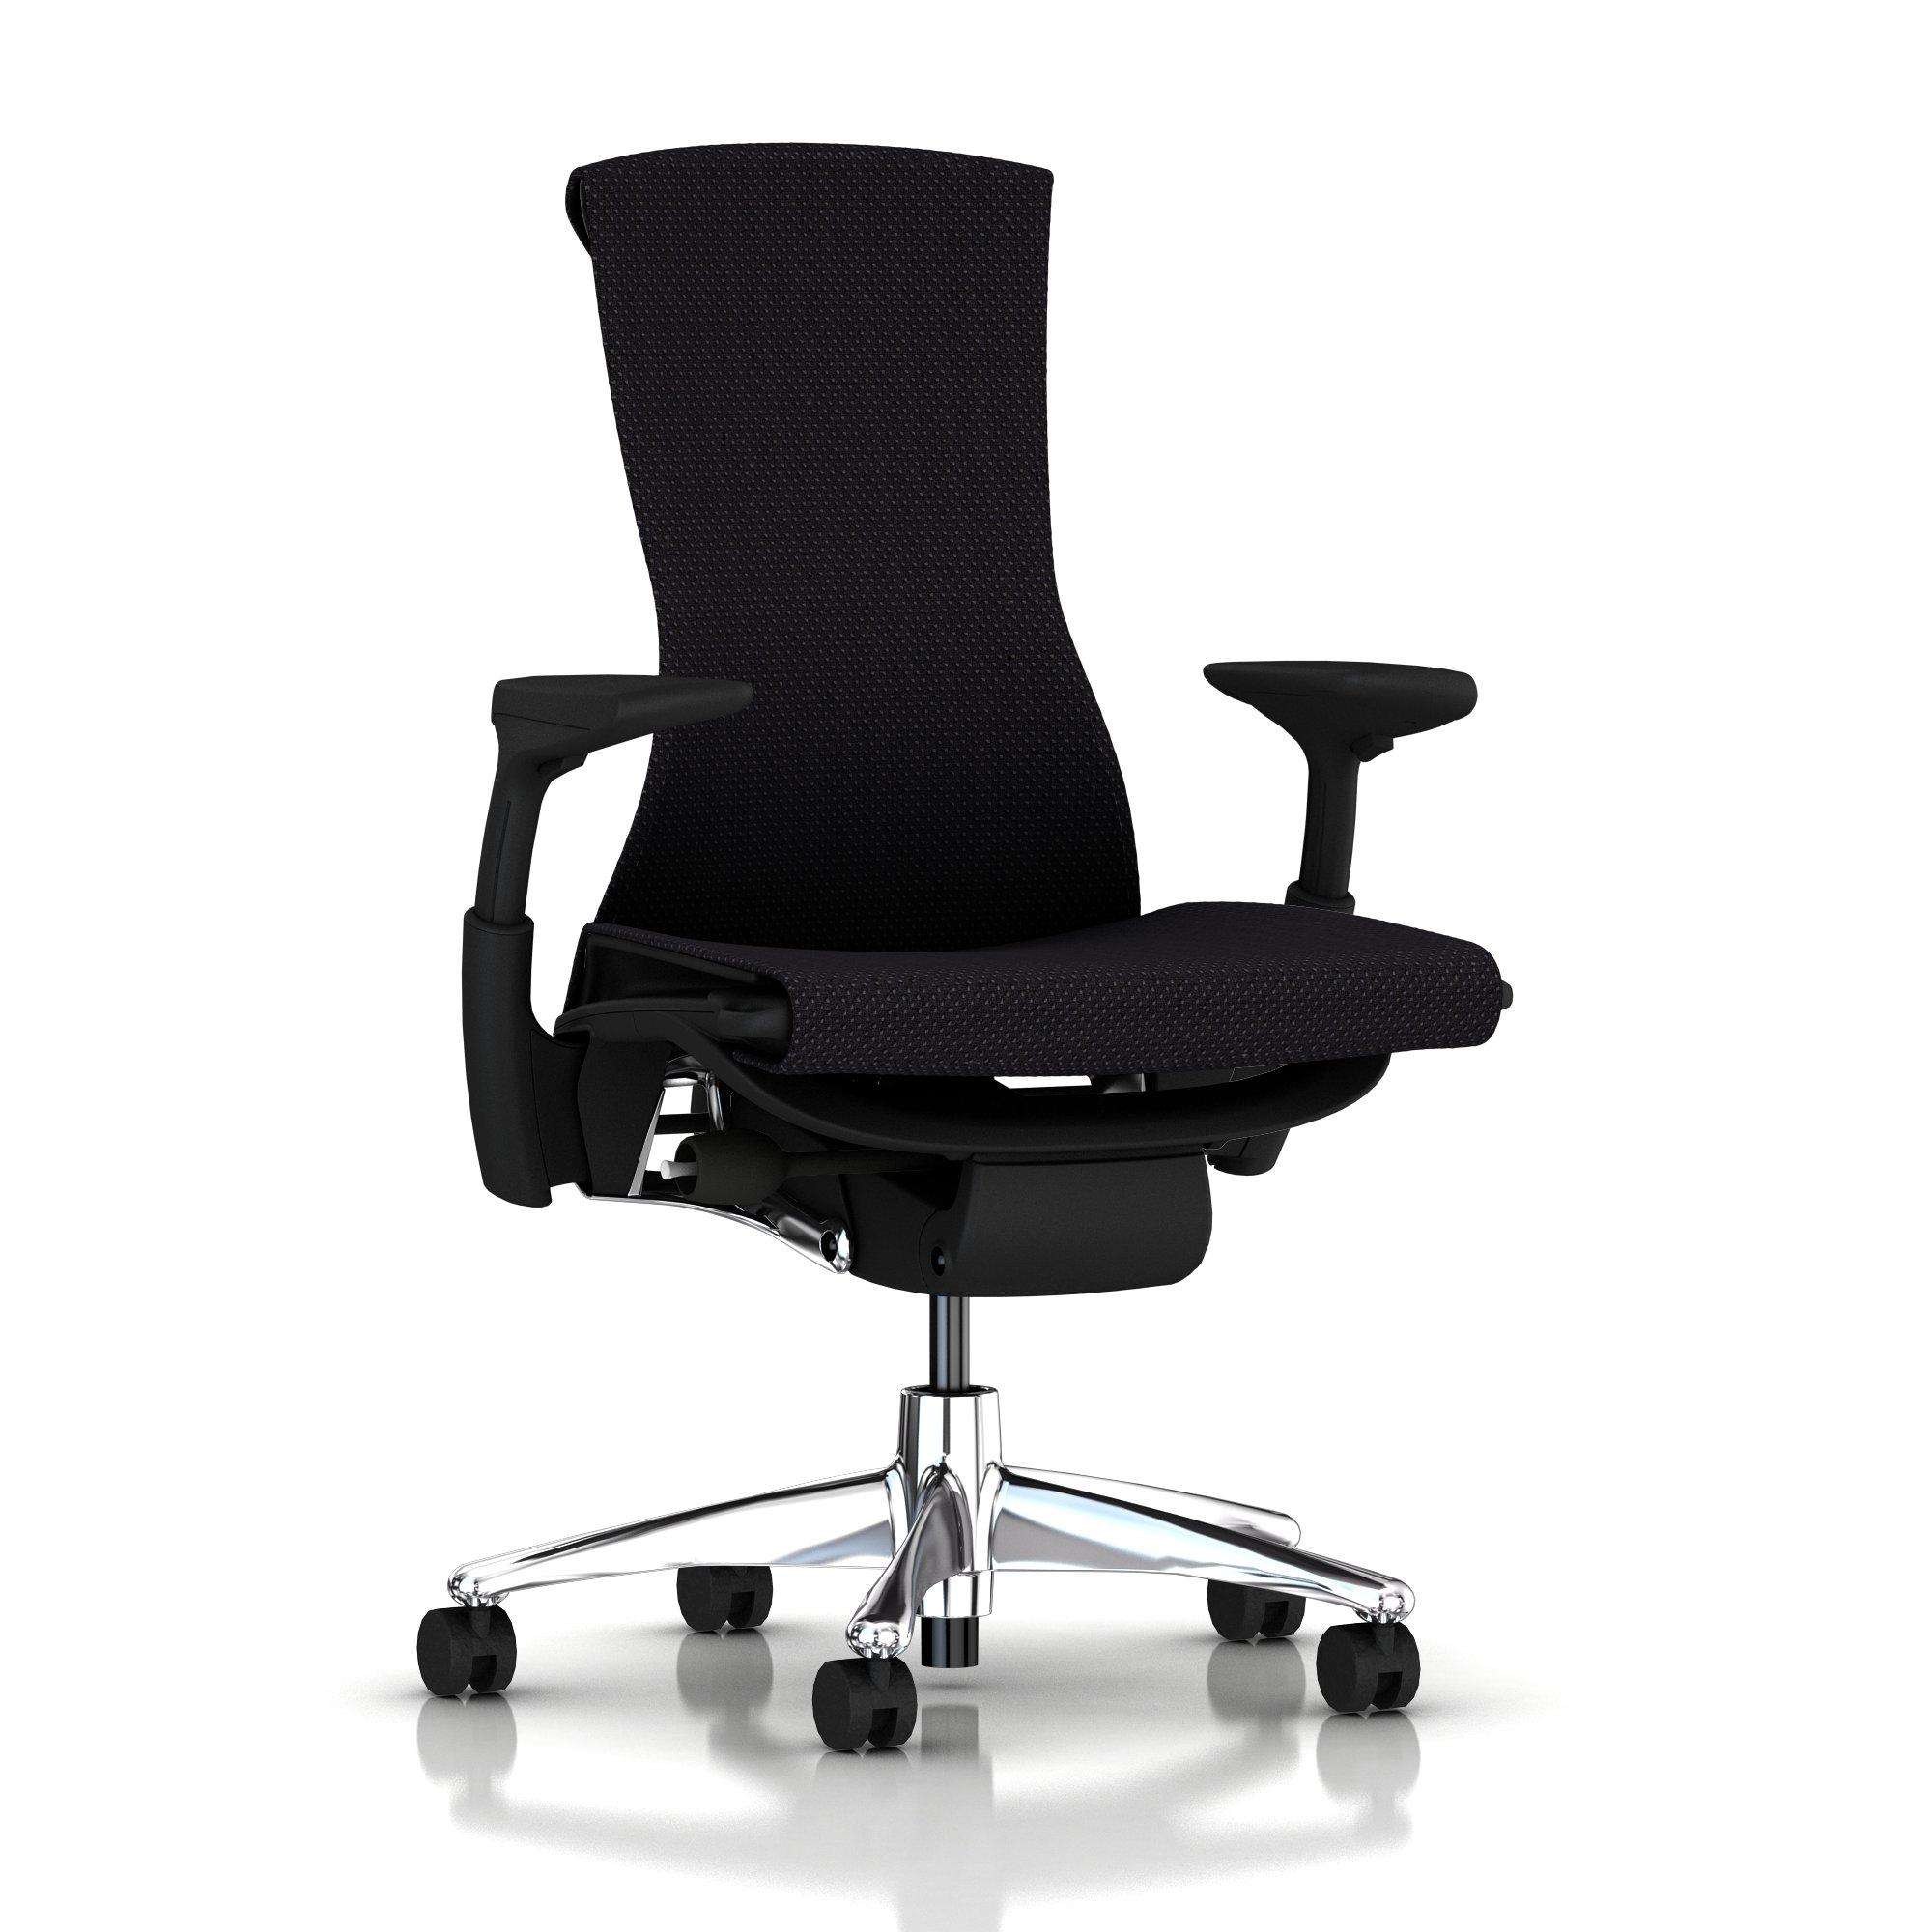 Herman Miller Embody Chair Black Balance with Graphite Frame and